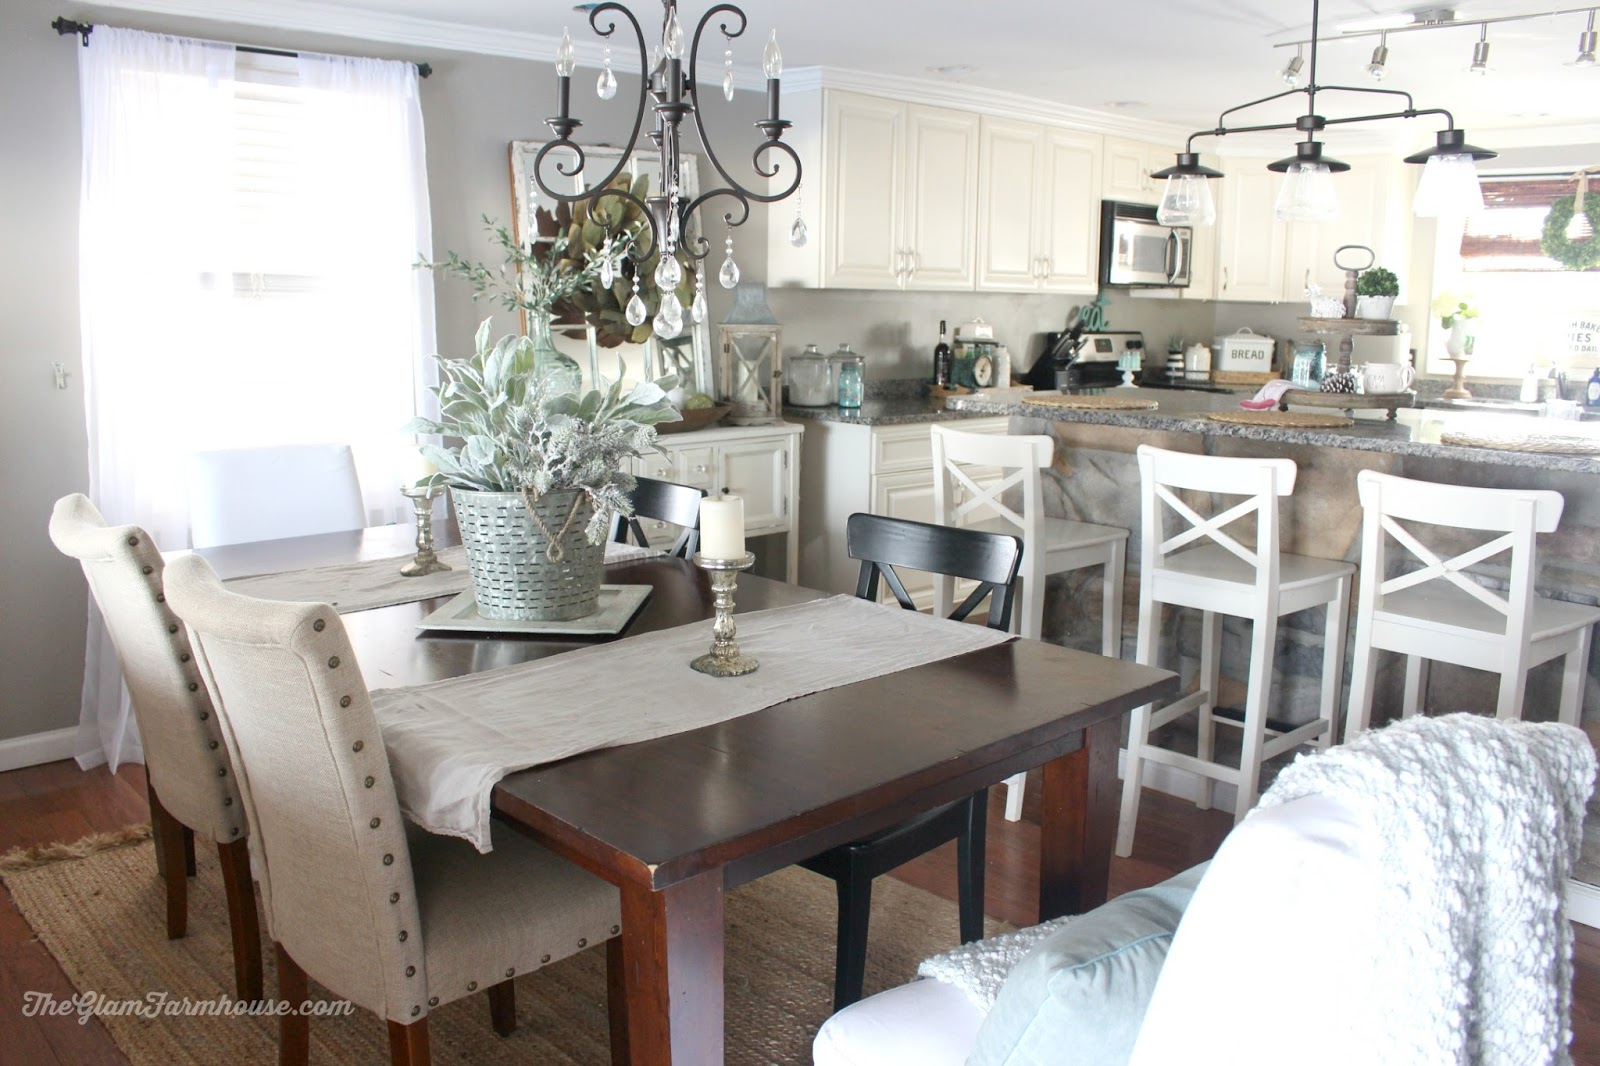 Rustic Glam Dining Room Tour With Before & Afters! The